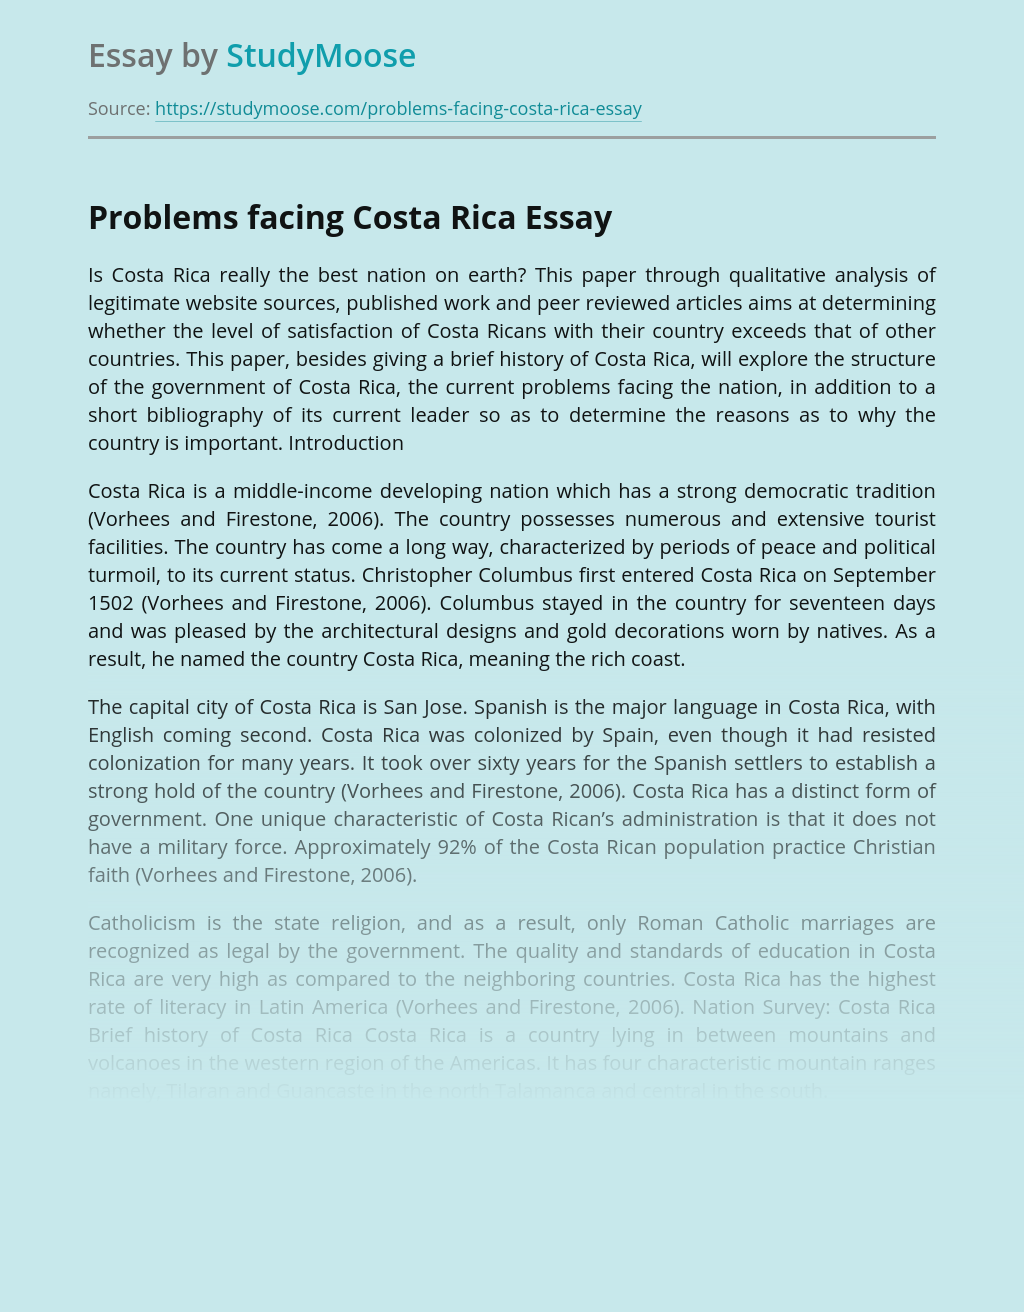 Problems facing Costa Rica